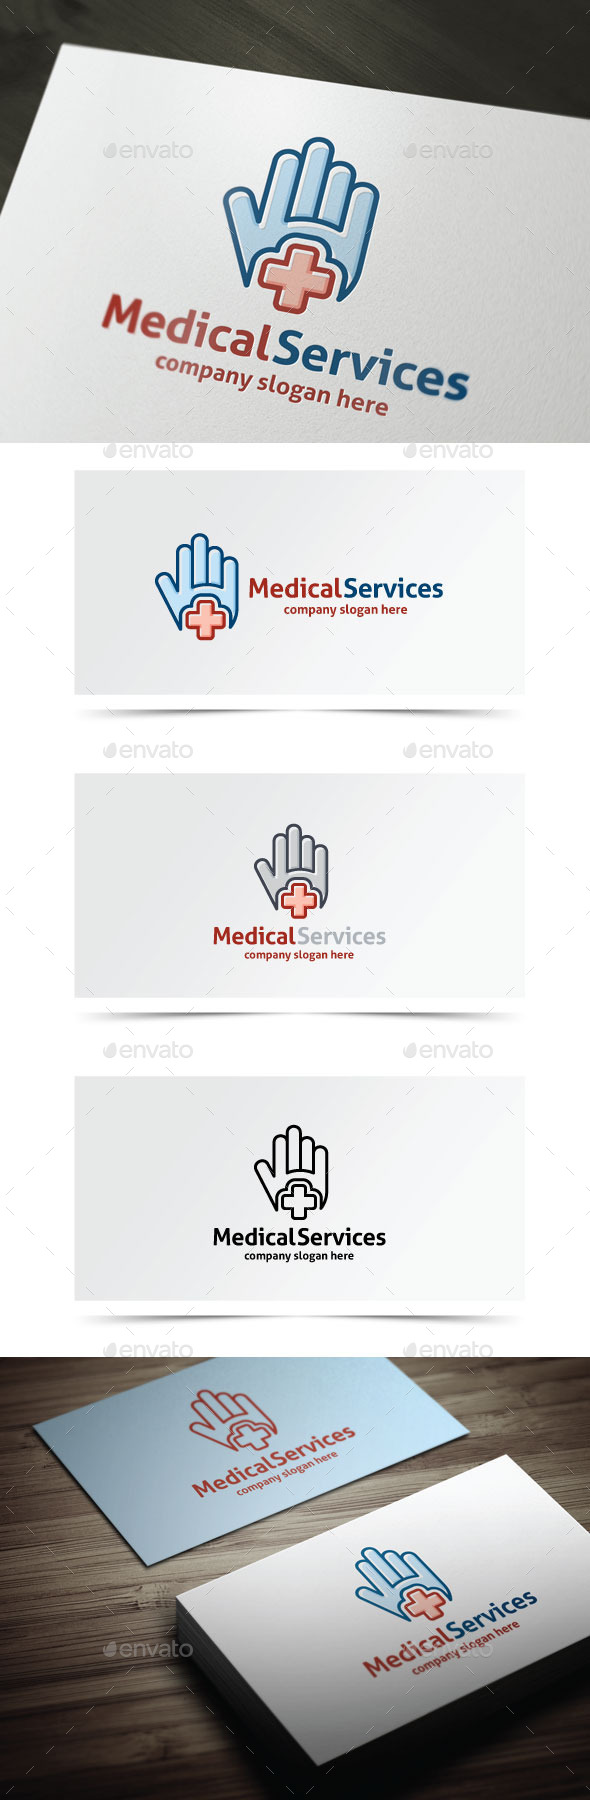 Medical Services - Objects Logo Templates